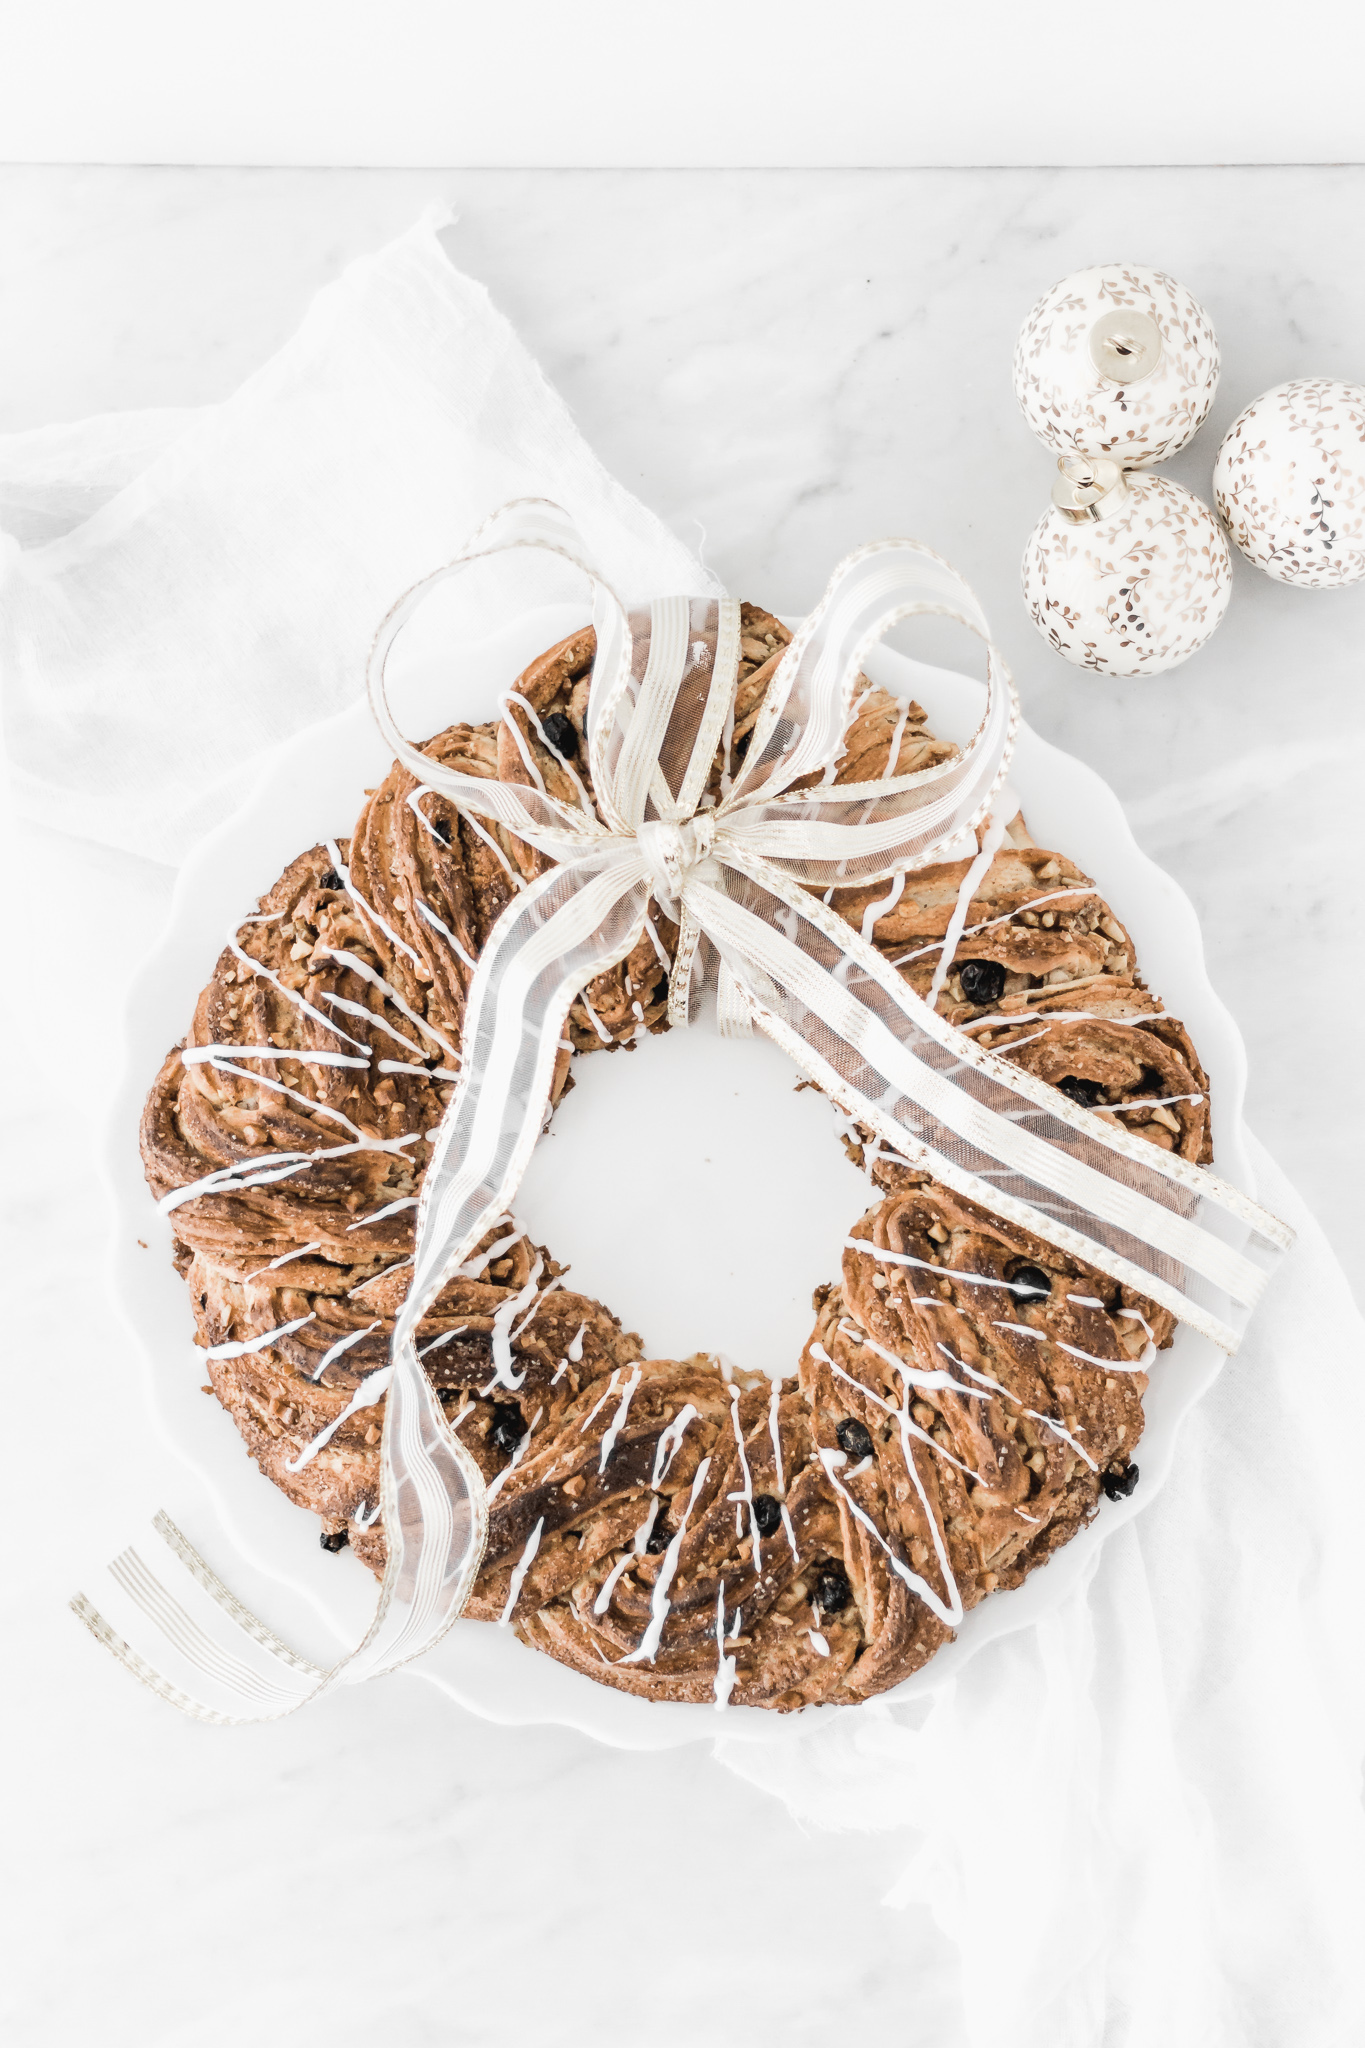 Christmas Bread Wreath with Walnuts and Raisins